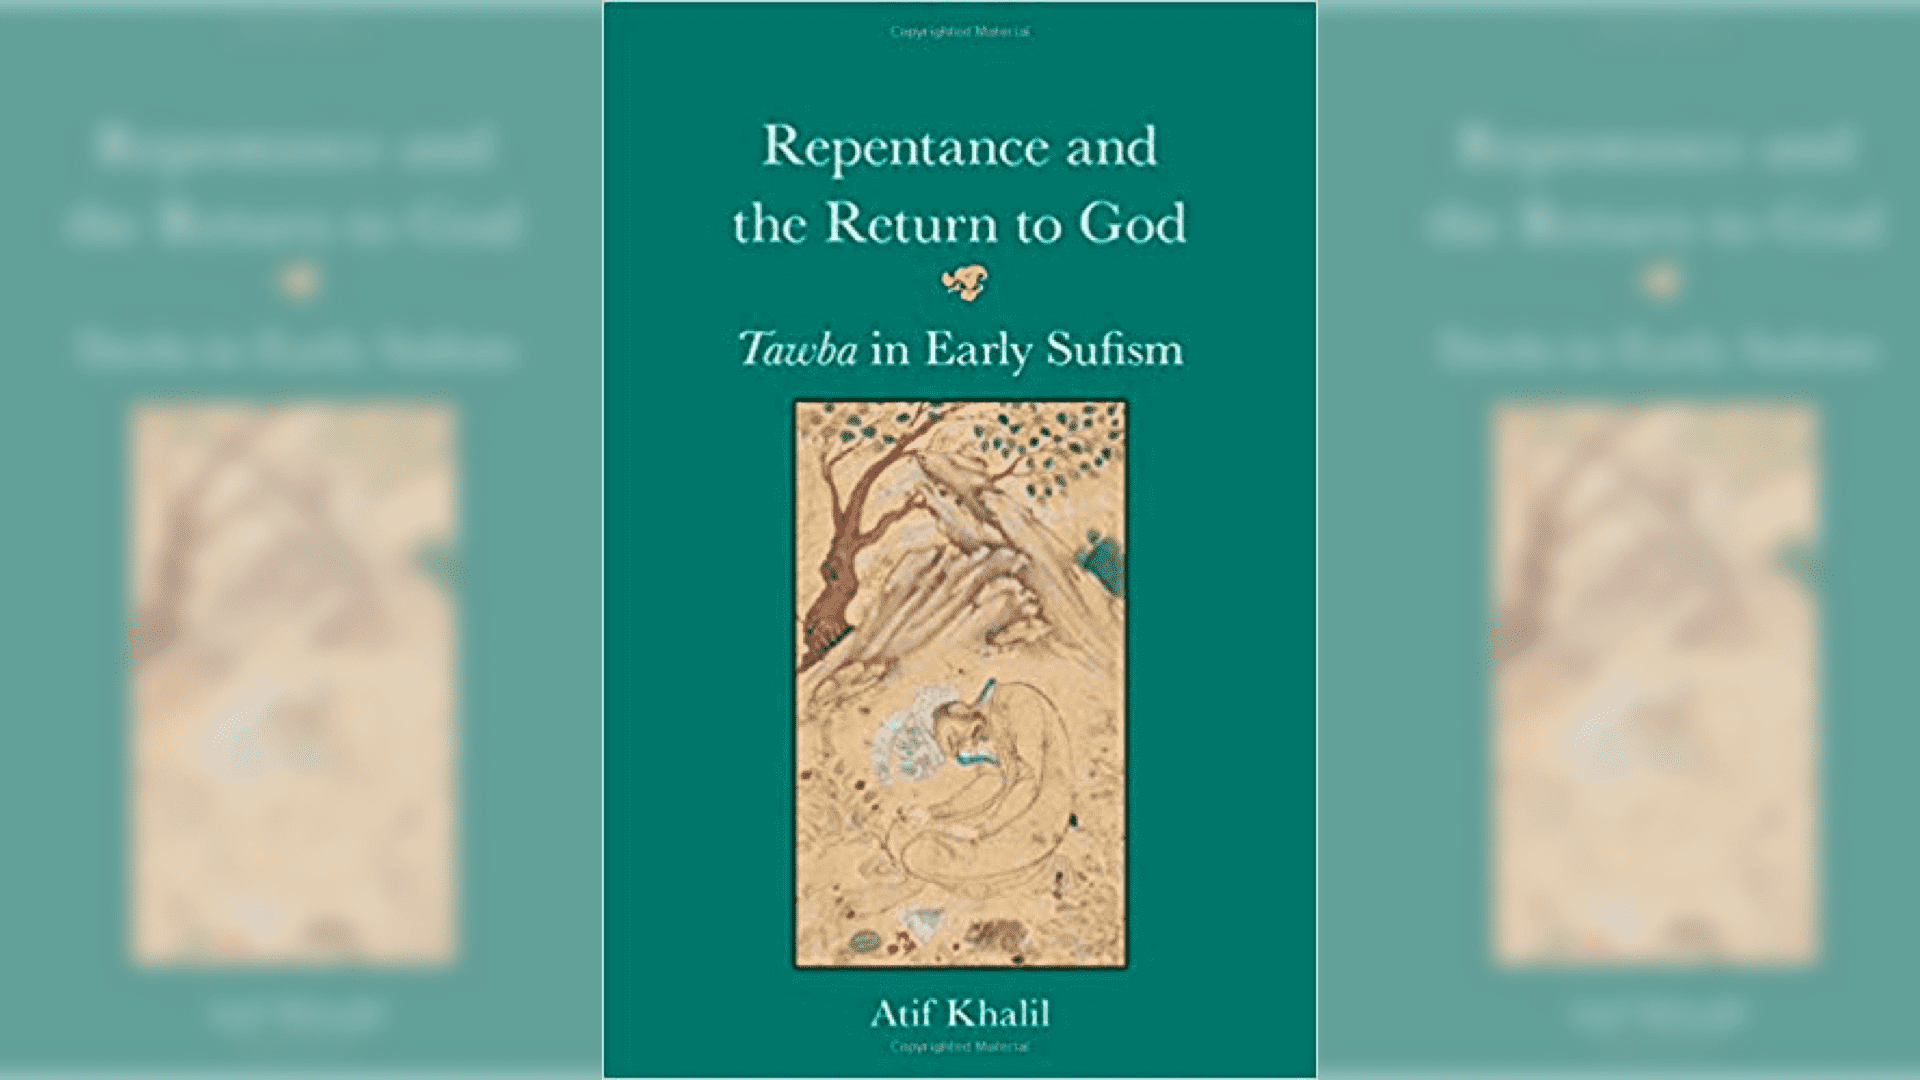 Repentance and the Return to God in Early Sufism (Written by Atif Khalil)